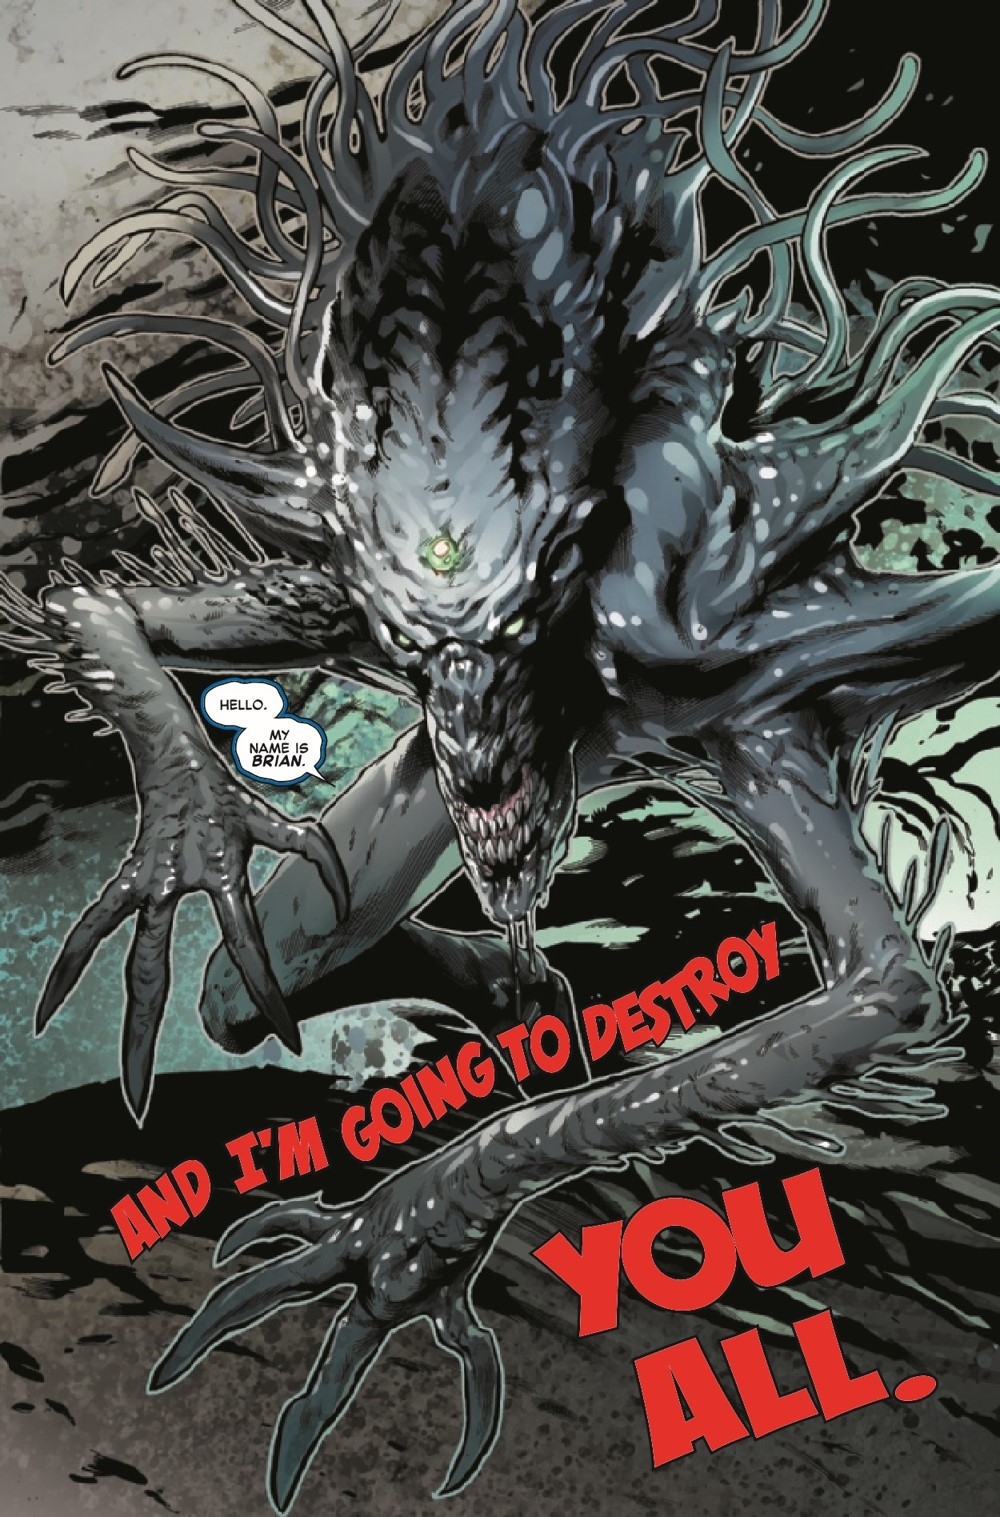 SYMBIOTESMCR2021003_Preview-6 ComicList Previews: SYMBIOTE SPIDER-MAN CROSSROADS #3 (OF 5)